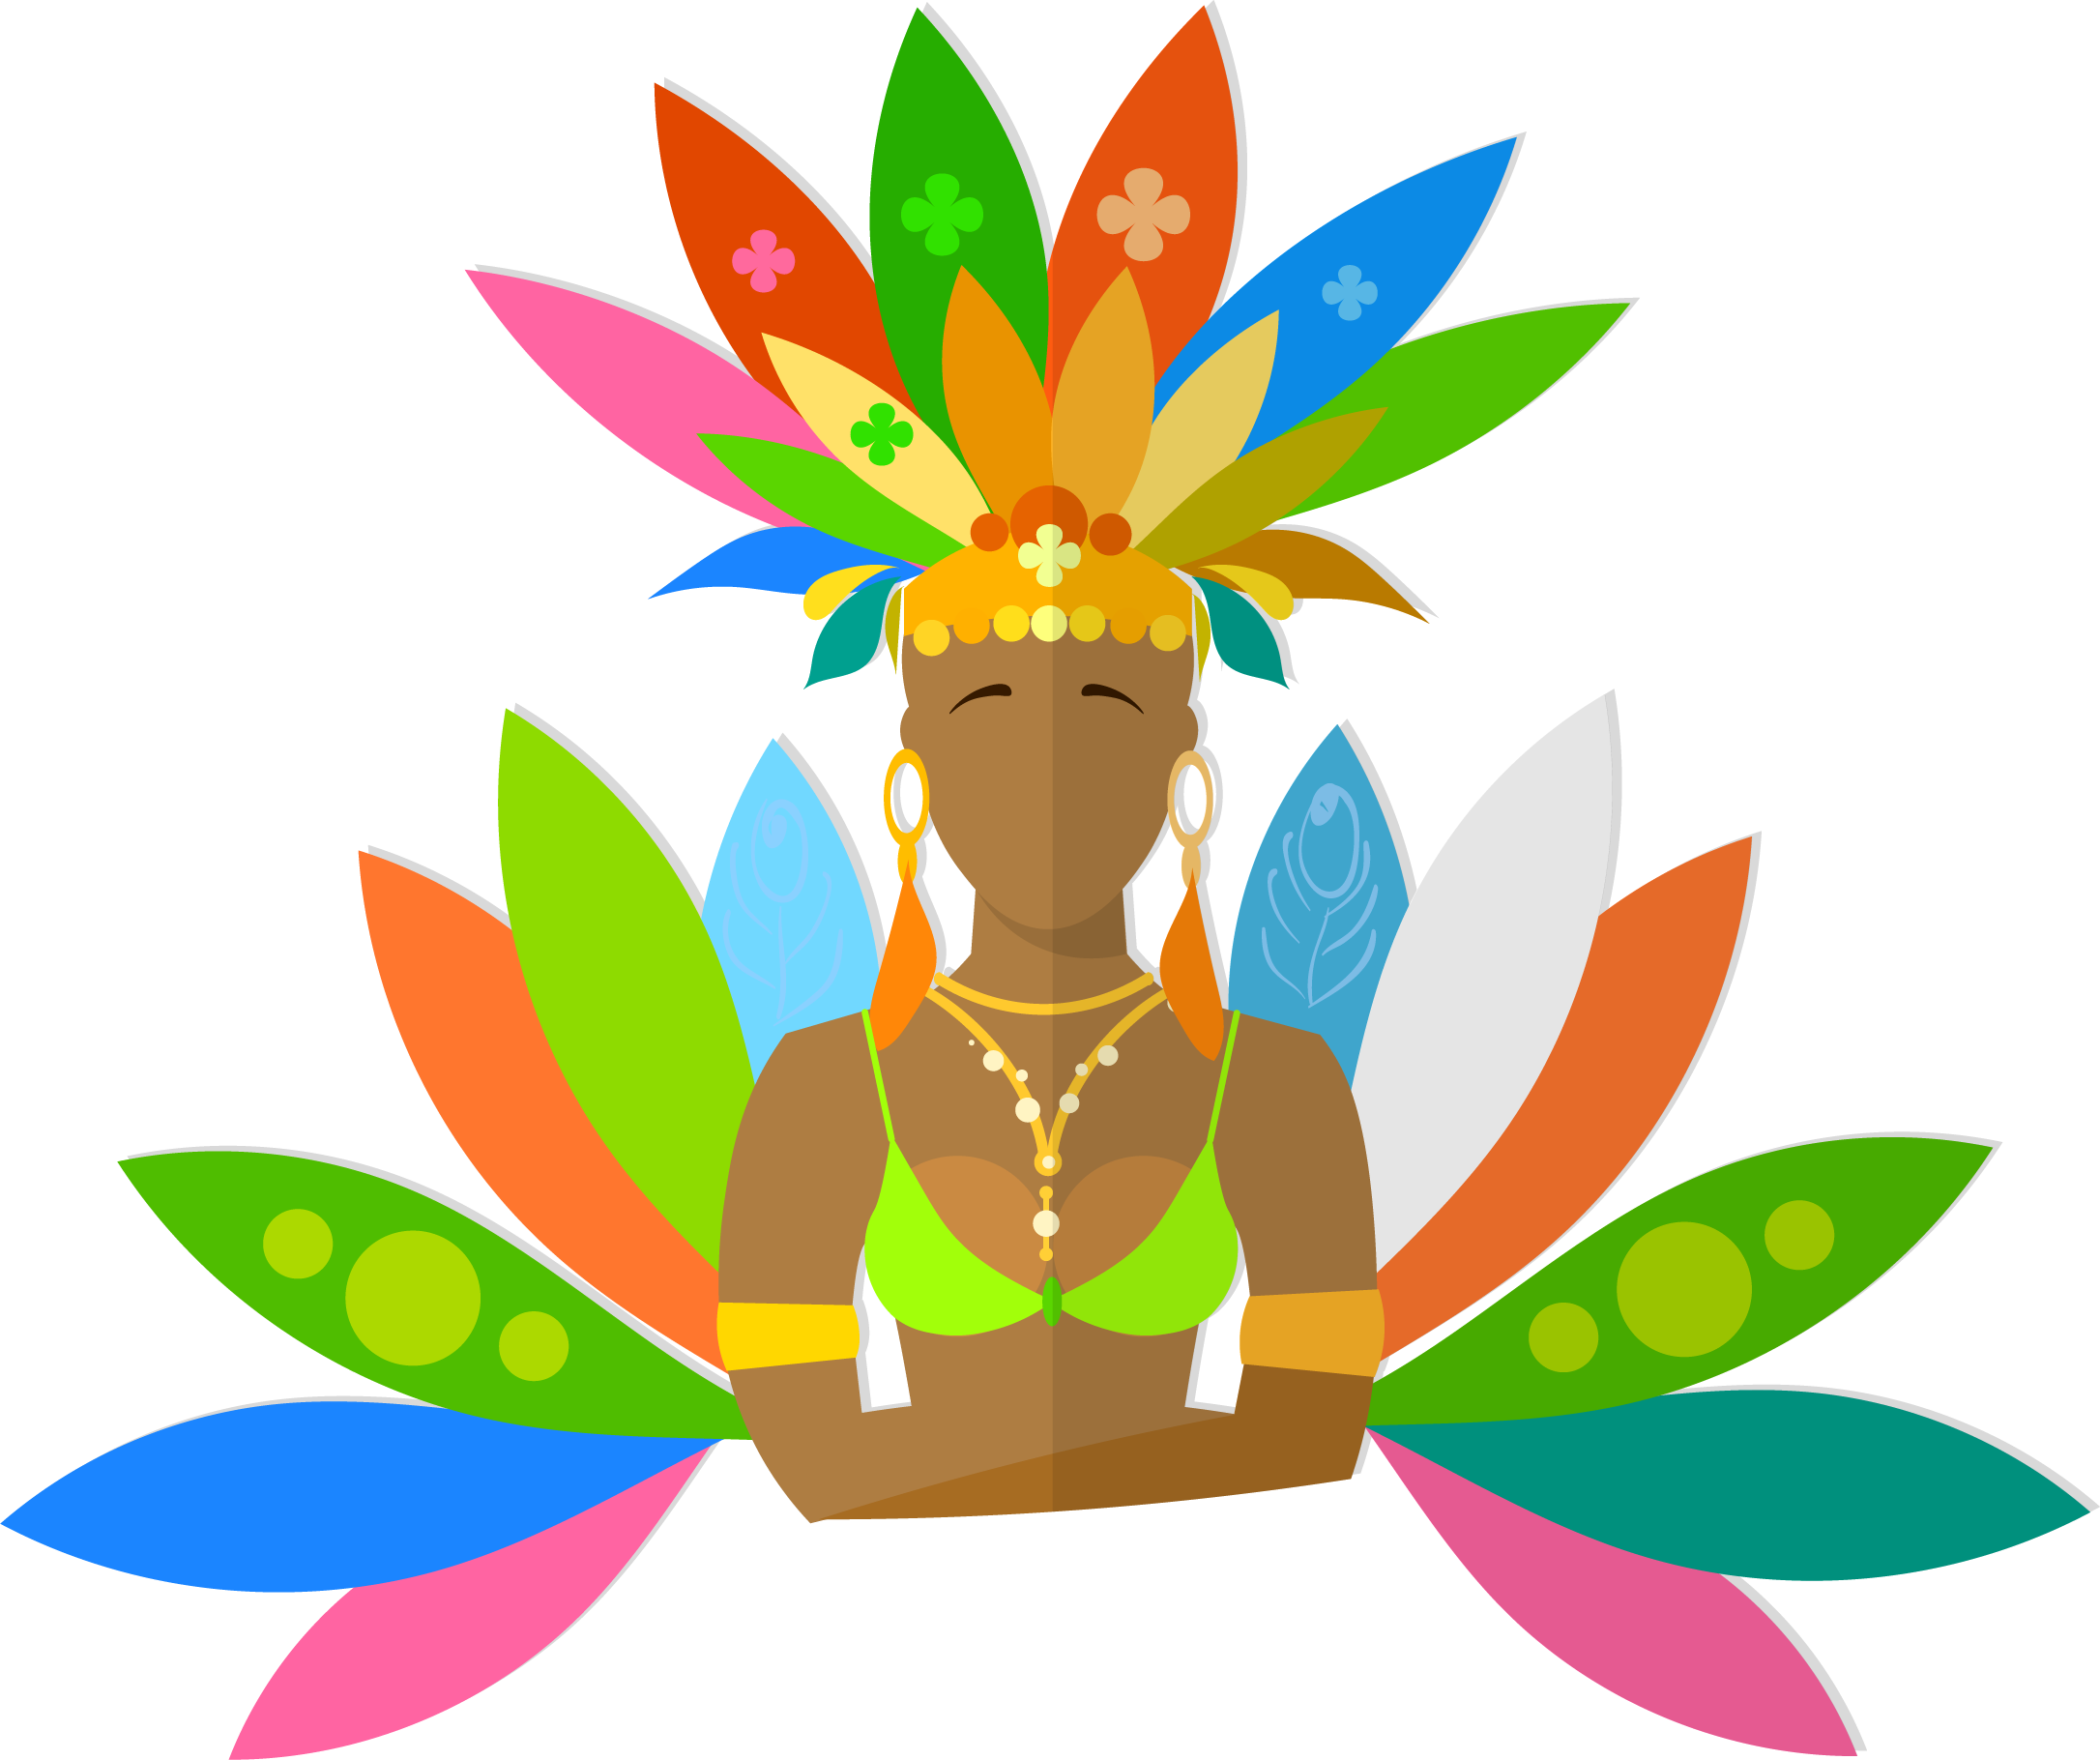 Hand drawn flower clipart svg Carnival in Rio de Janeiro Brazilian Carnival Clip art - Hand Drawn ... svg